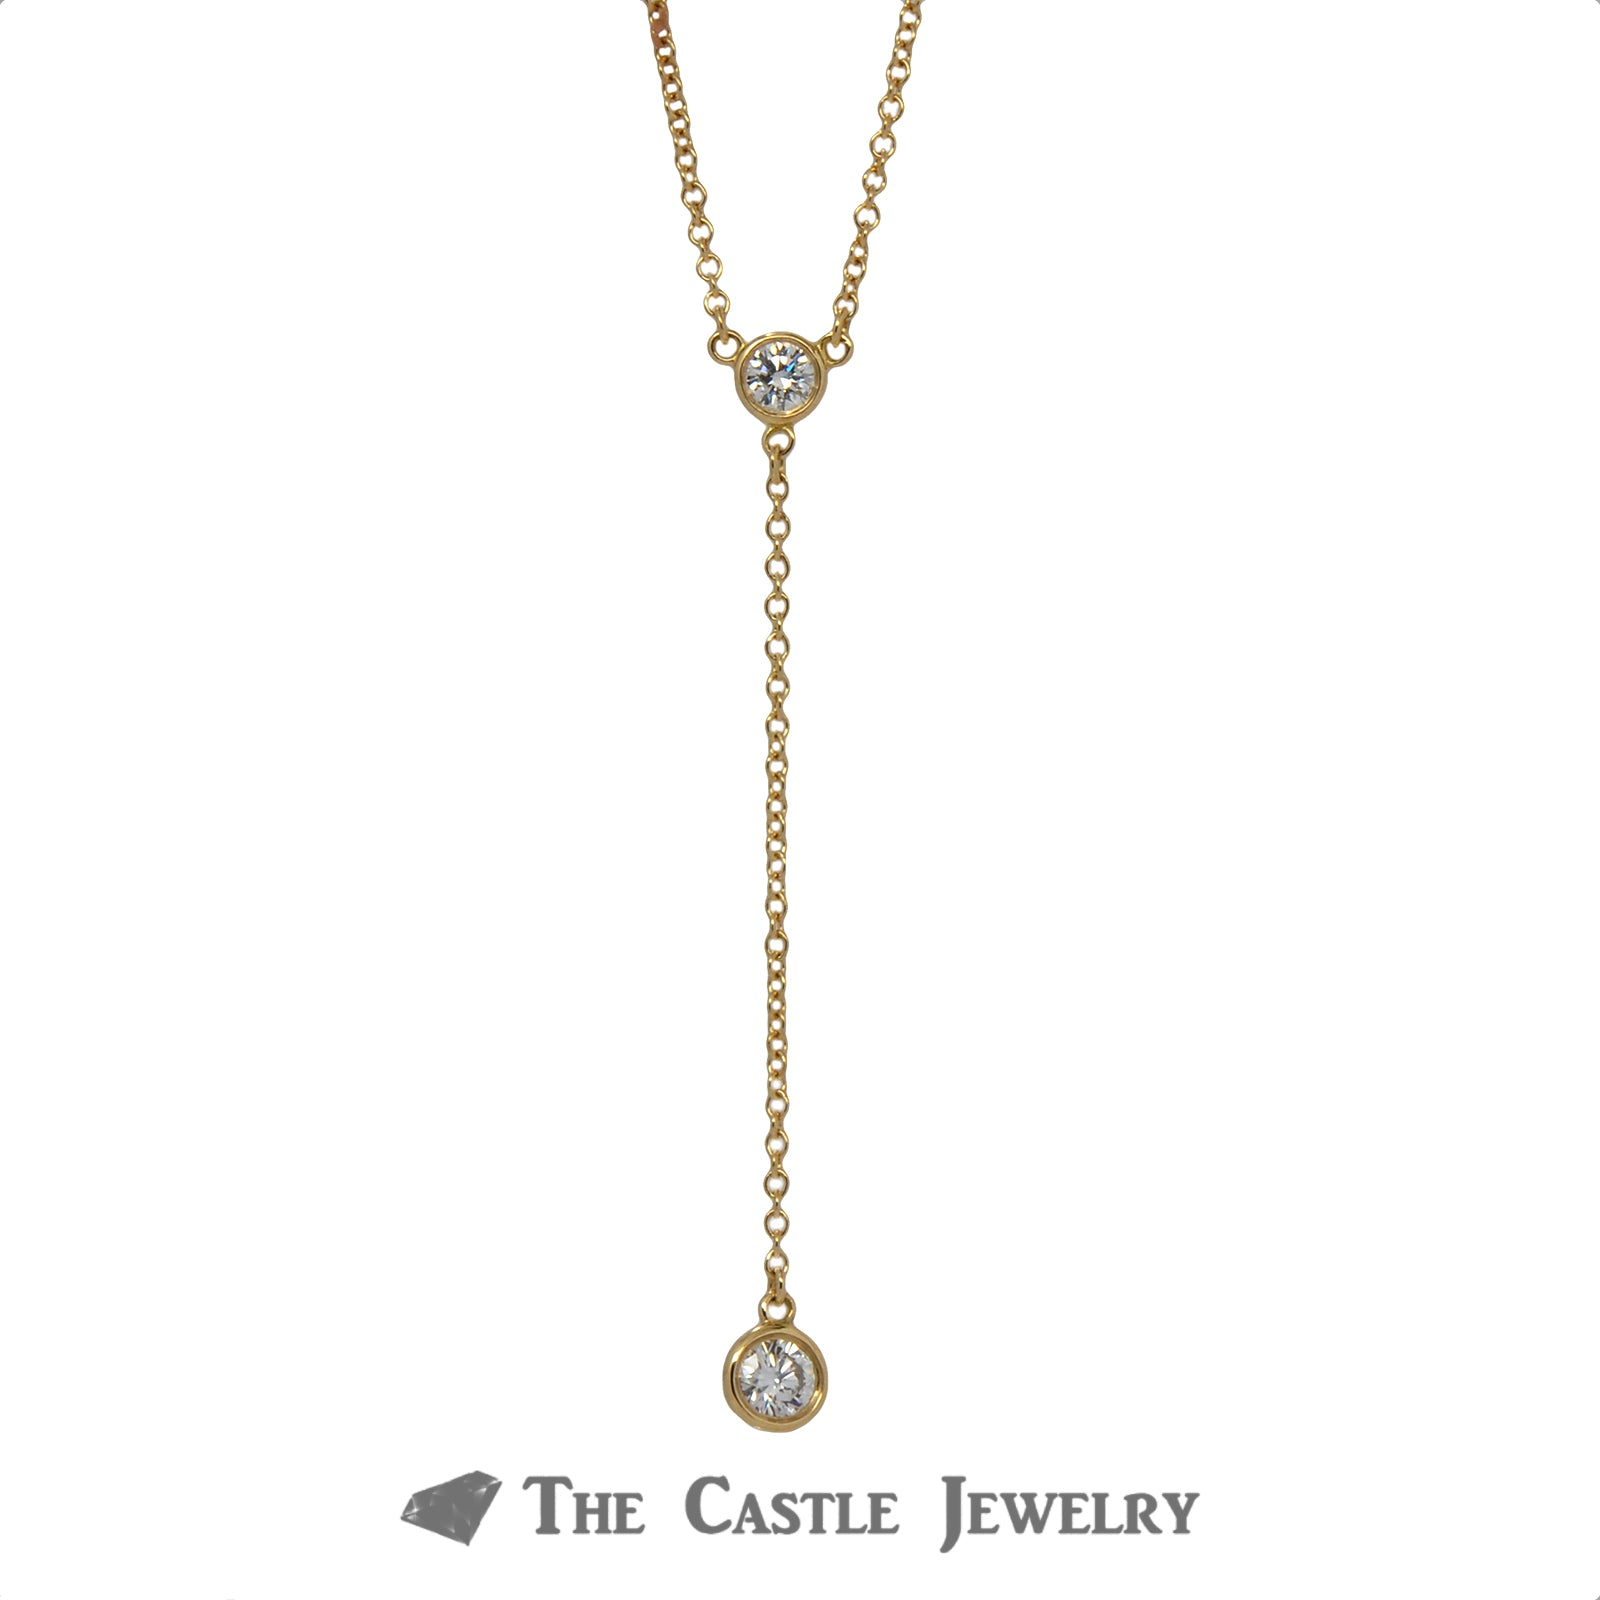 Tiffany & Co. Delicate Drop Necklace with .25cttw Diamonds in 18k Yellow Gold-1